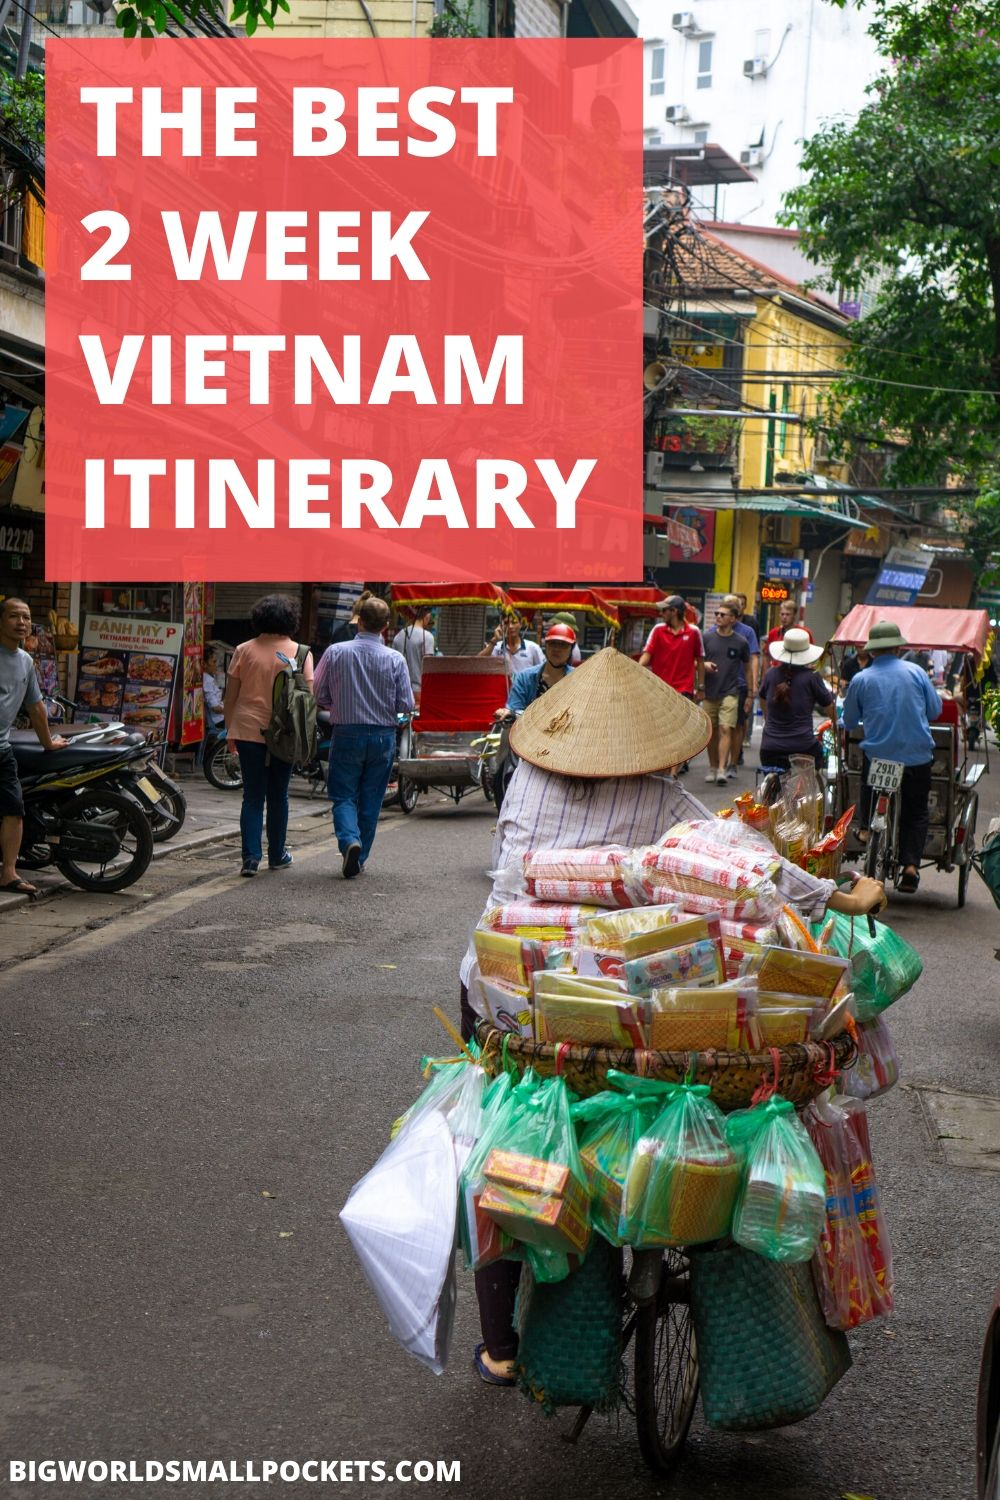 Epic 2 Week Vietnam Itinerary + 5 Ideas for a Longer Trip